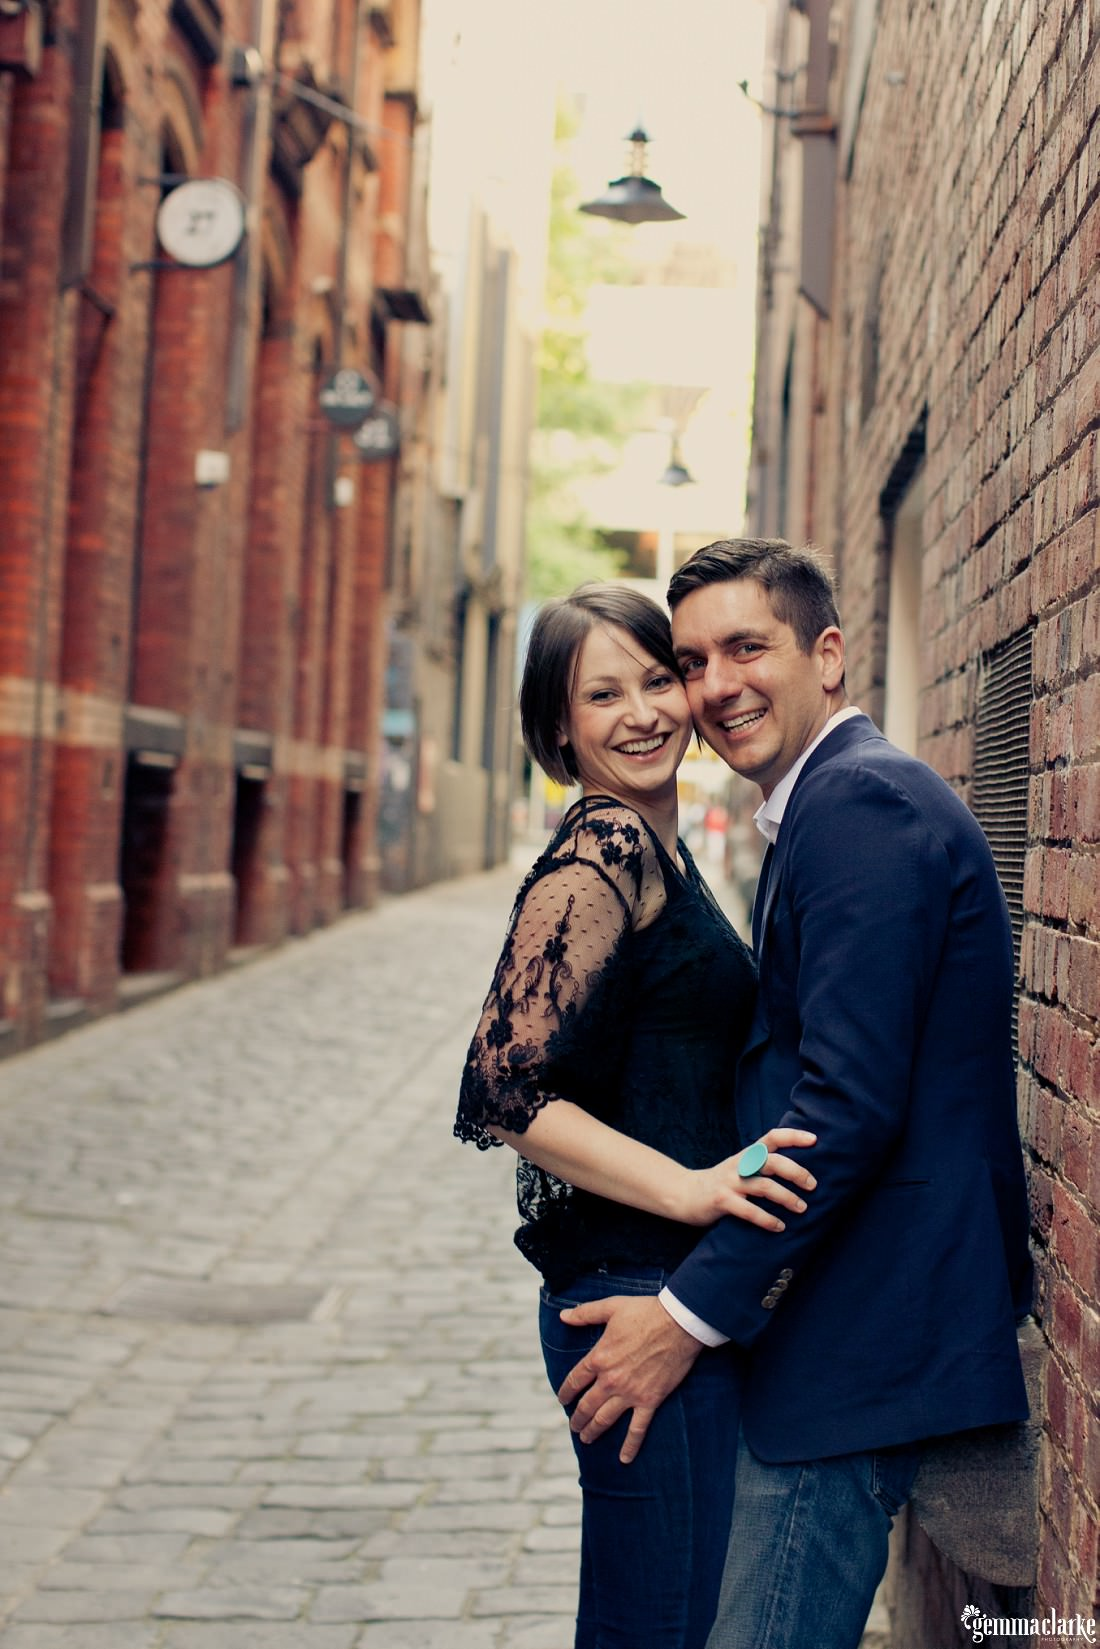 gemmaclarkephotography_melbourne-engagement-photos_leanne-and-stuart-0020